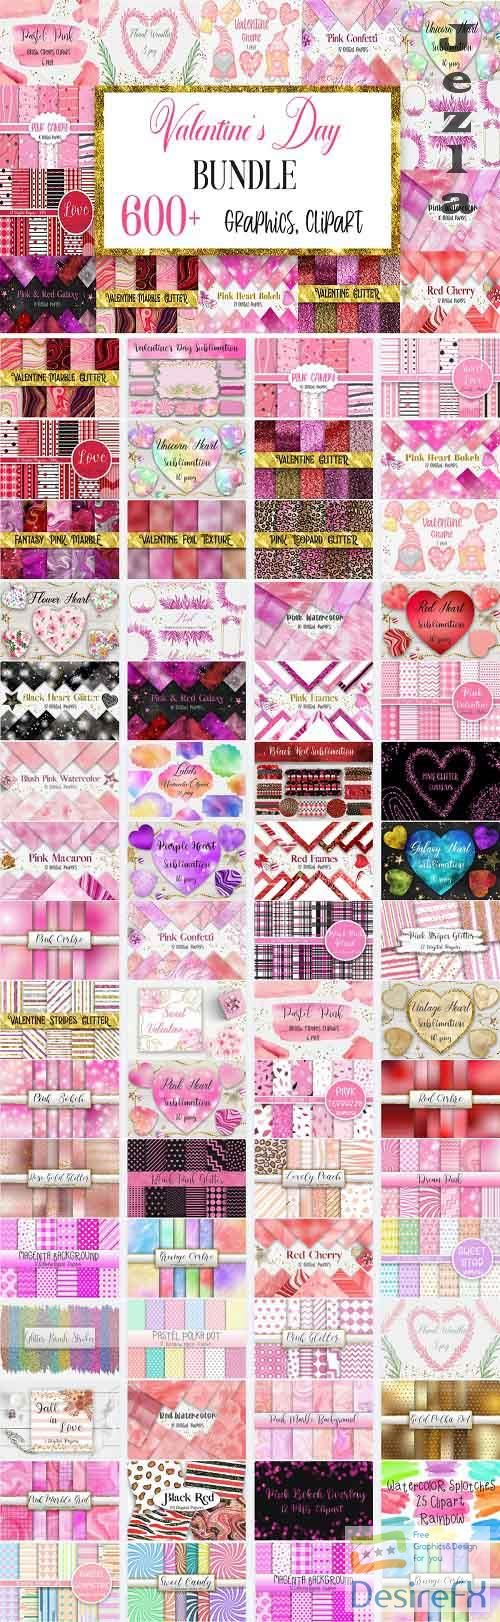 Valentines Day Graphics Bundle - 62 Premium Graphics